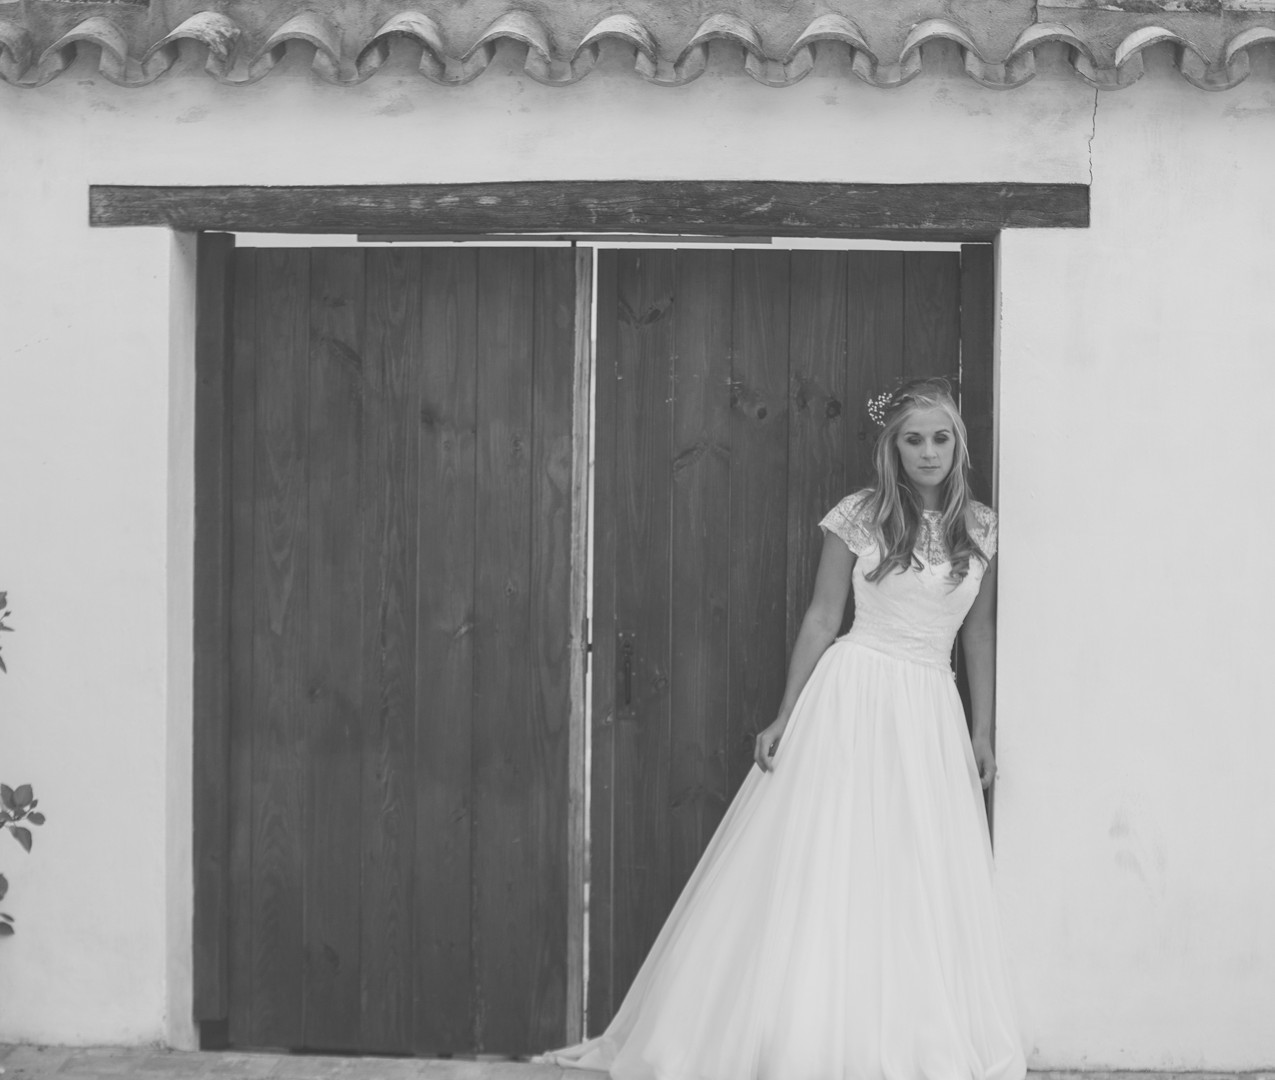 Spanish vintage country wedding